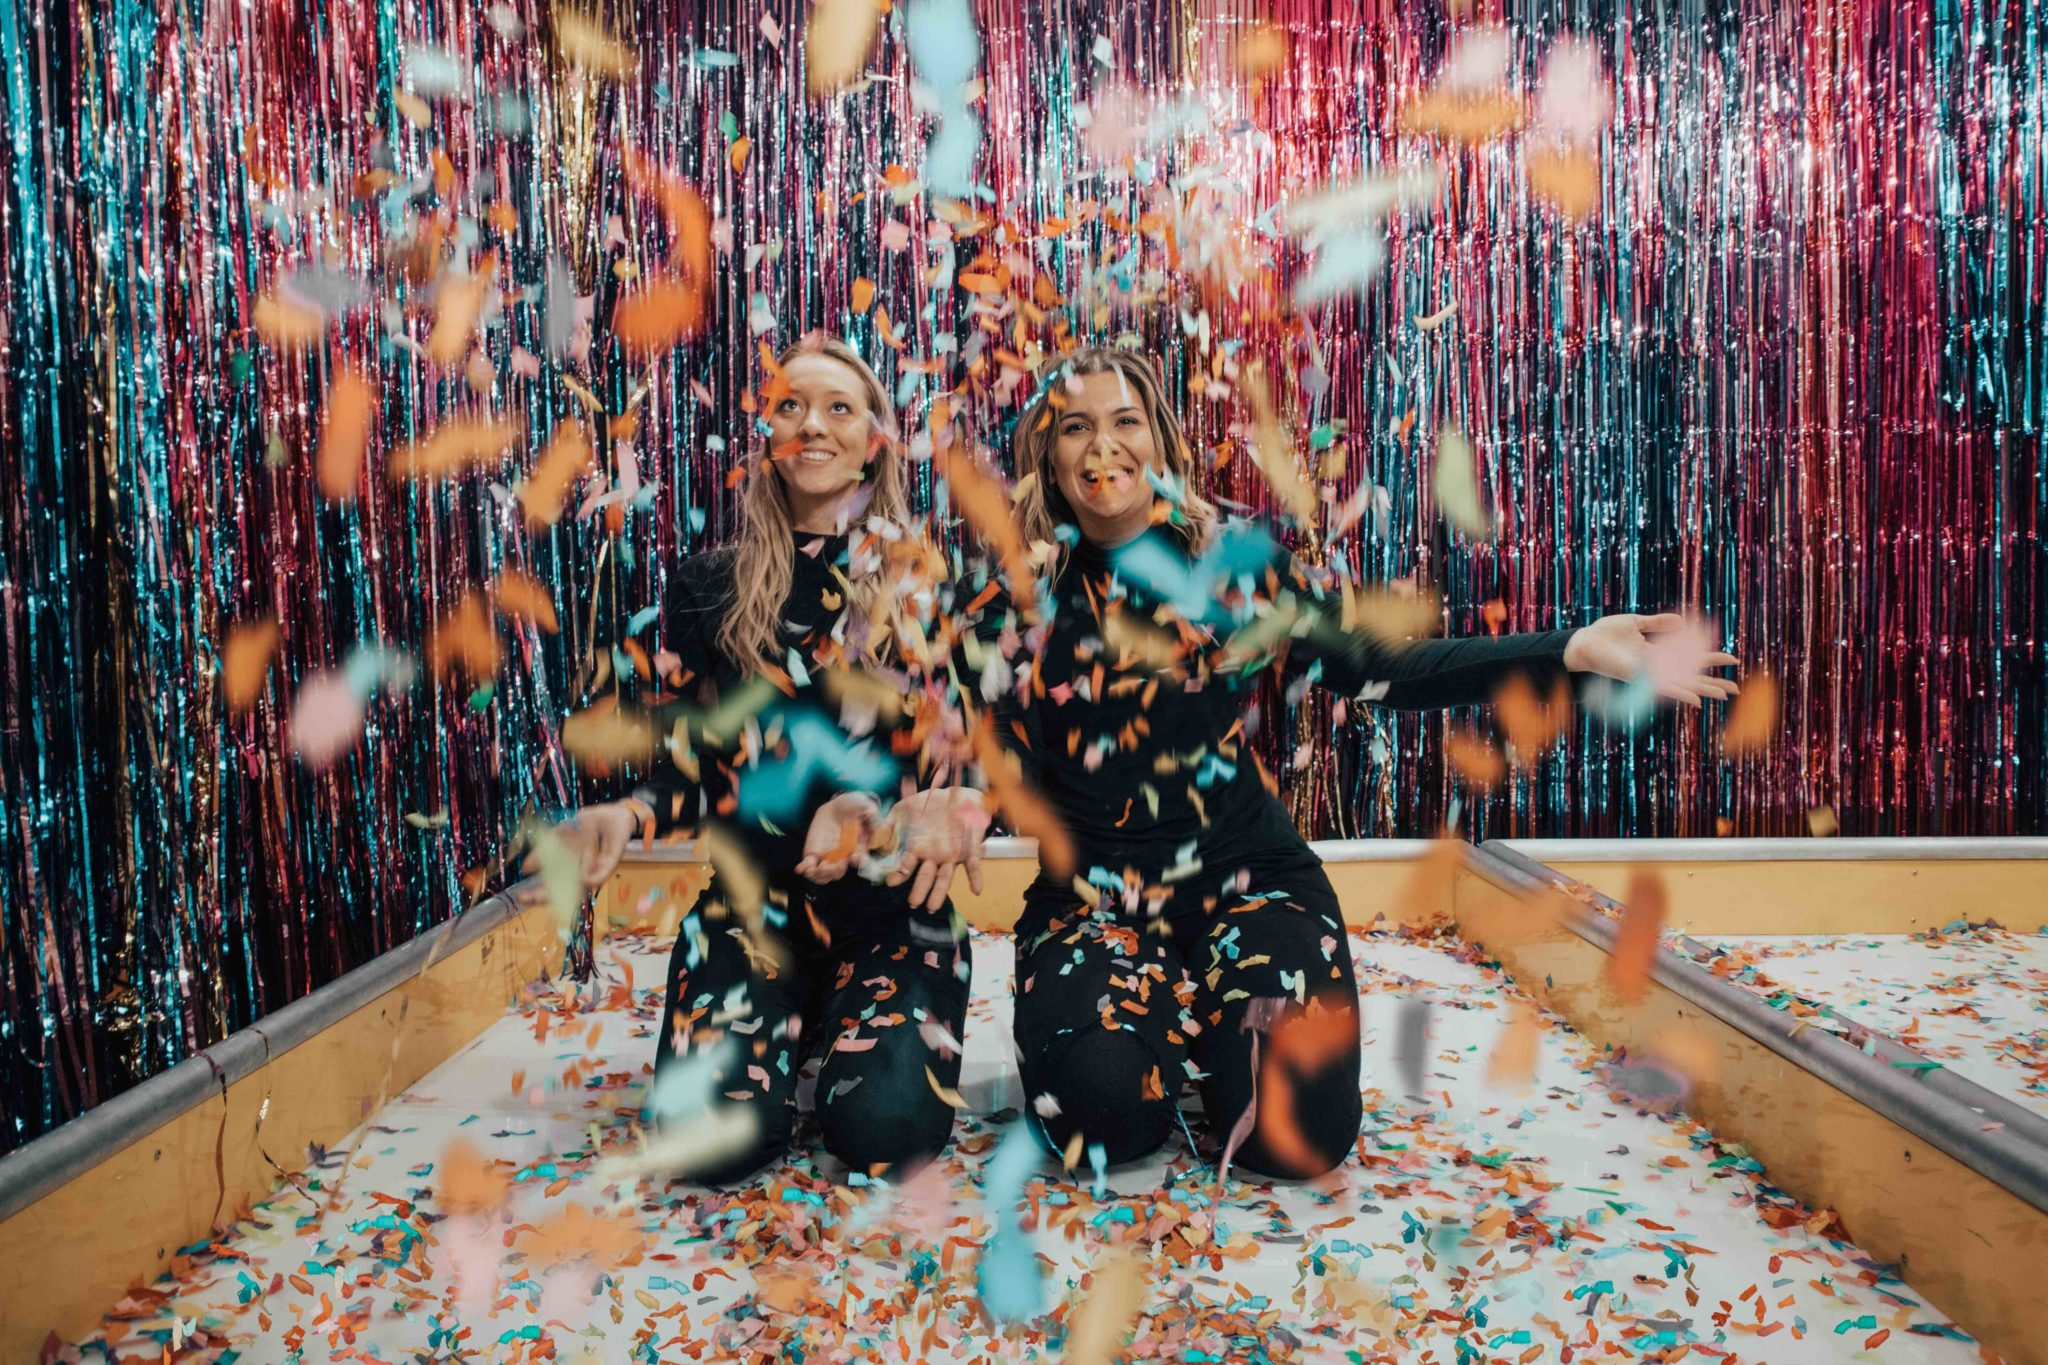 sober holiday party with confetti